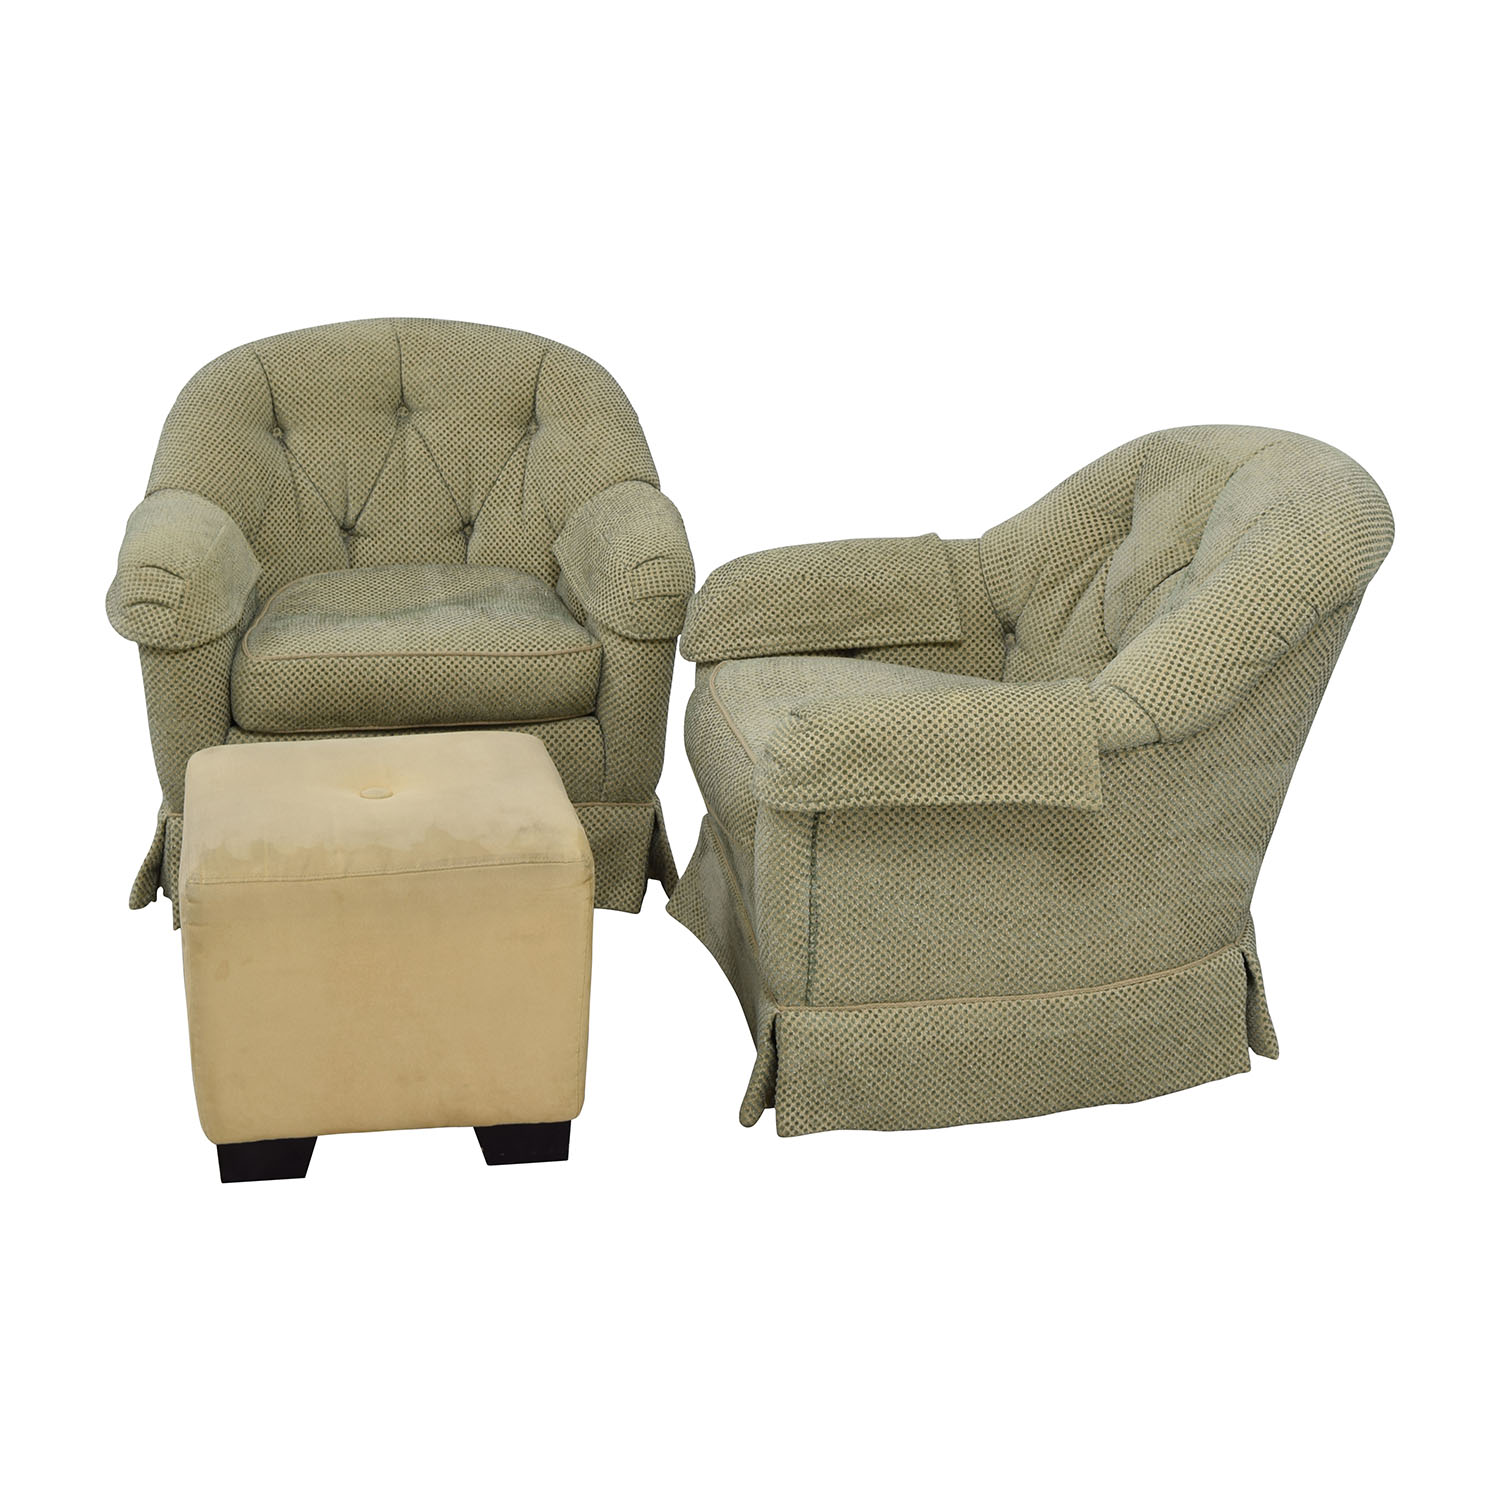 Ordinaire ... Sherrill Furniture Sherrill Furniture Skirted Swivel Club Chairs With  Beige Ottoman Price ...